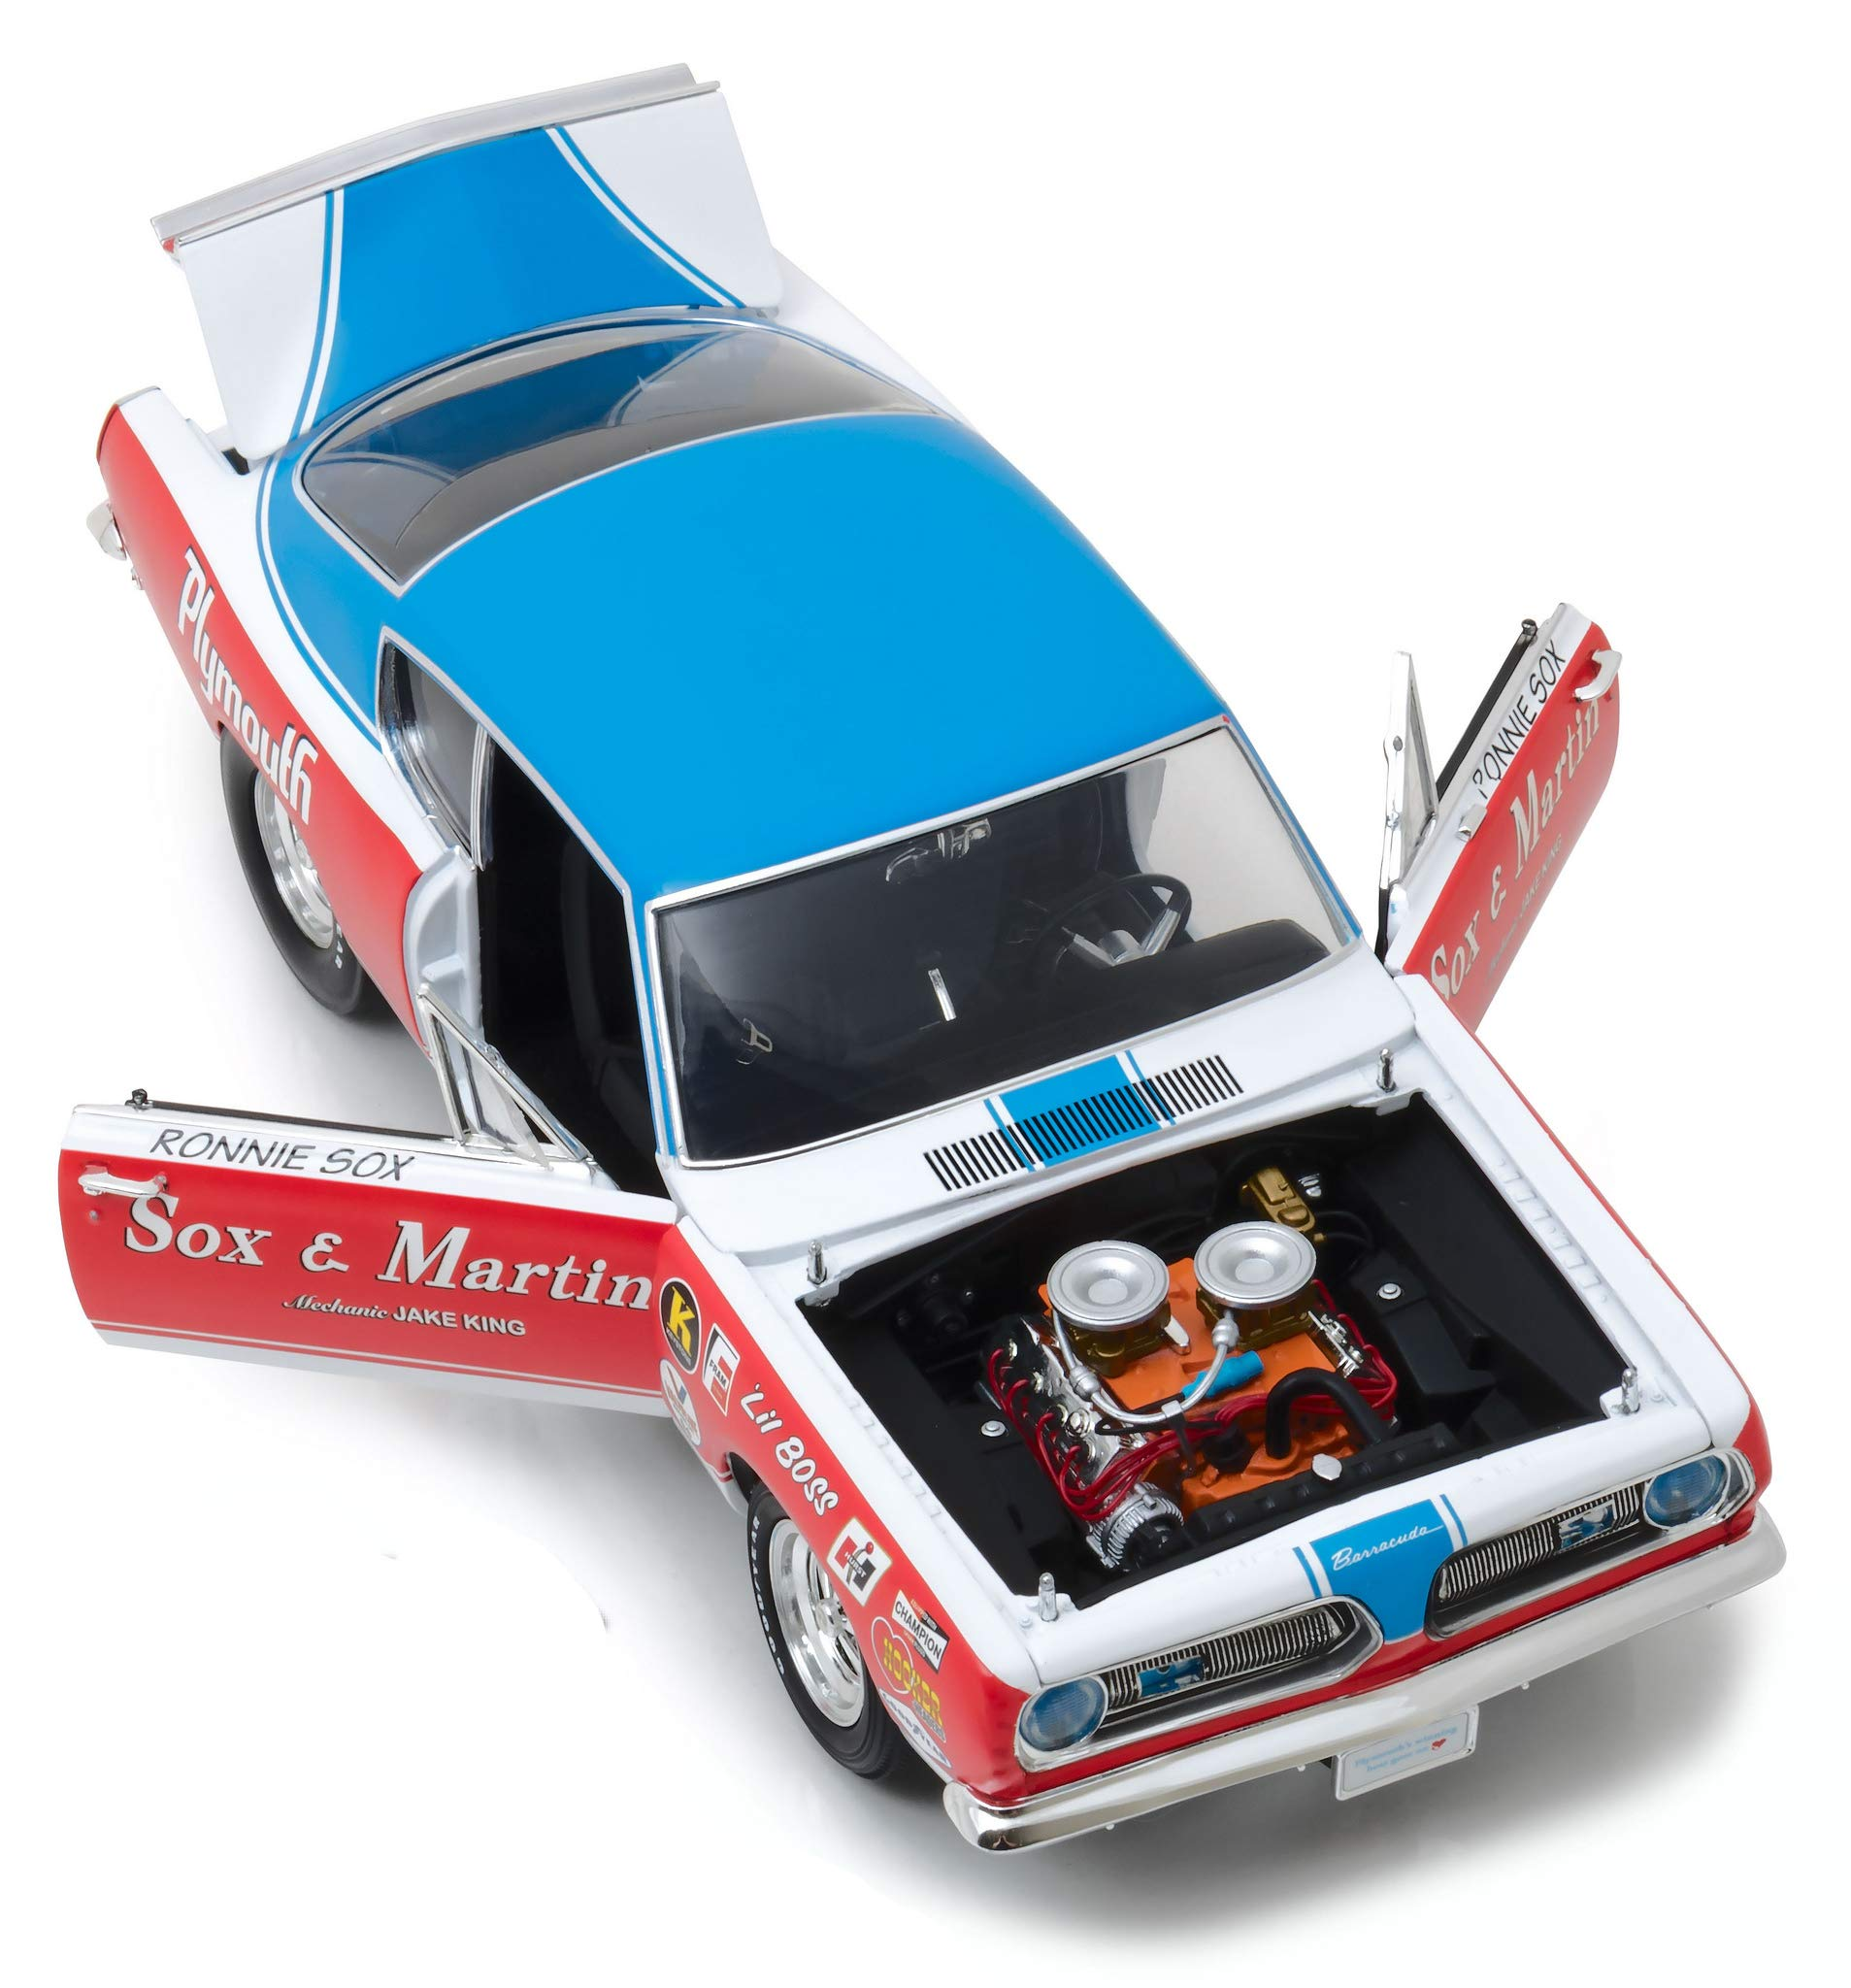 1968 Plymouth Barracuda Sox & Martin 1/18 Diecast Model Car by Highway 61 18003